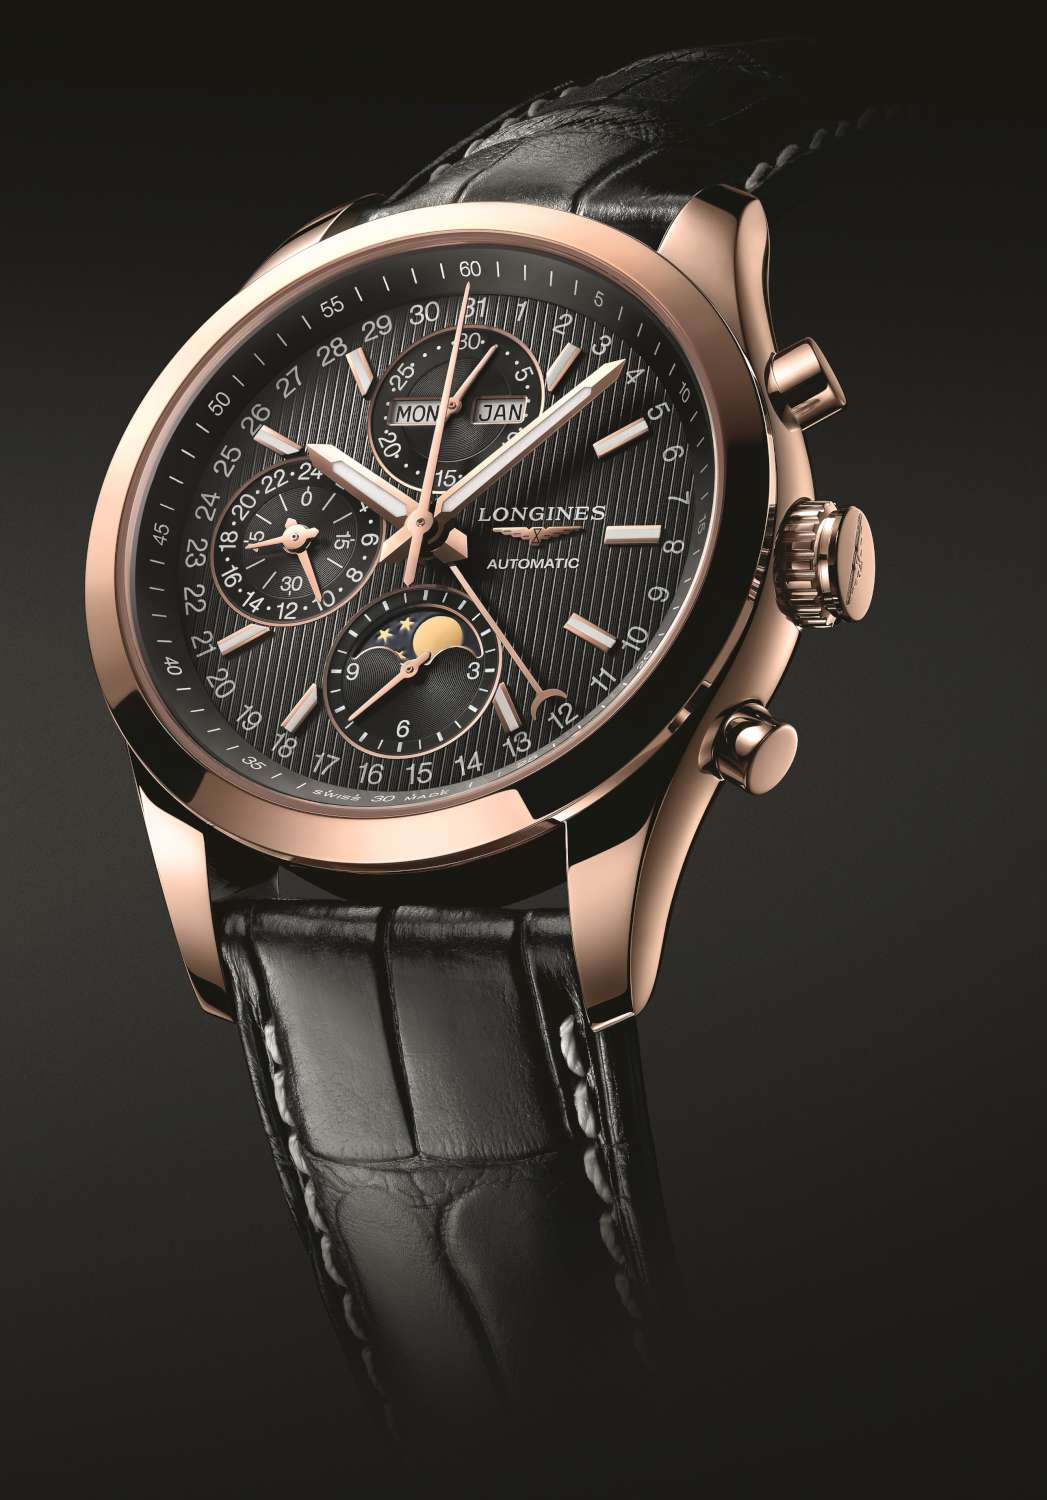 Longines Conquest Classic Moonphase, rose gold, black dial, black alligator strap, L2.798.8.52.3